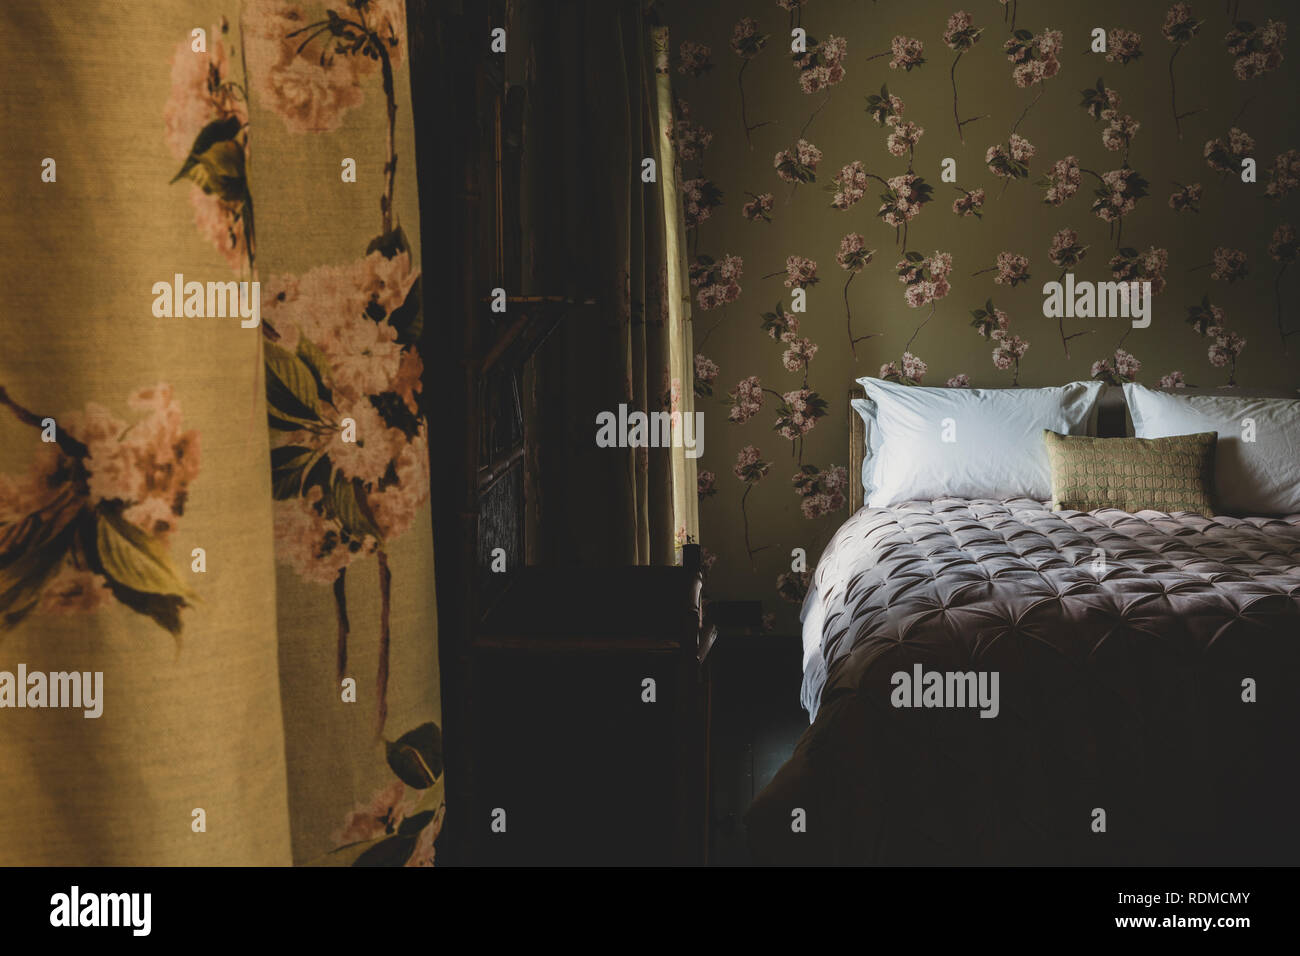 Interior view of bedroom with curtains and wallpaper with floral ...